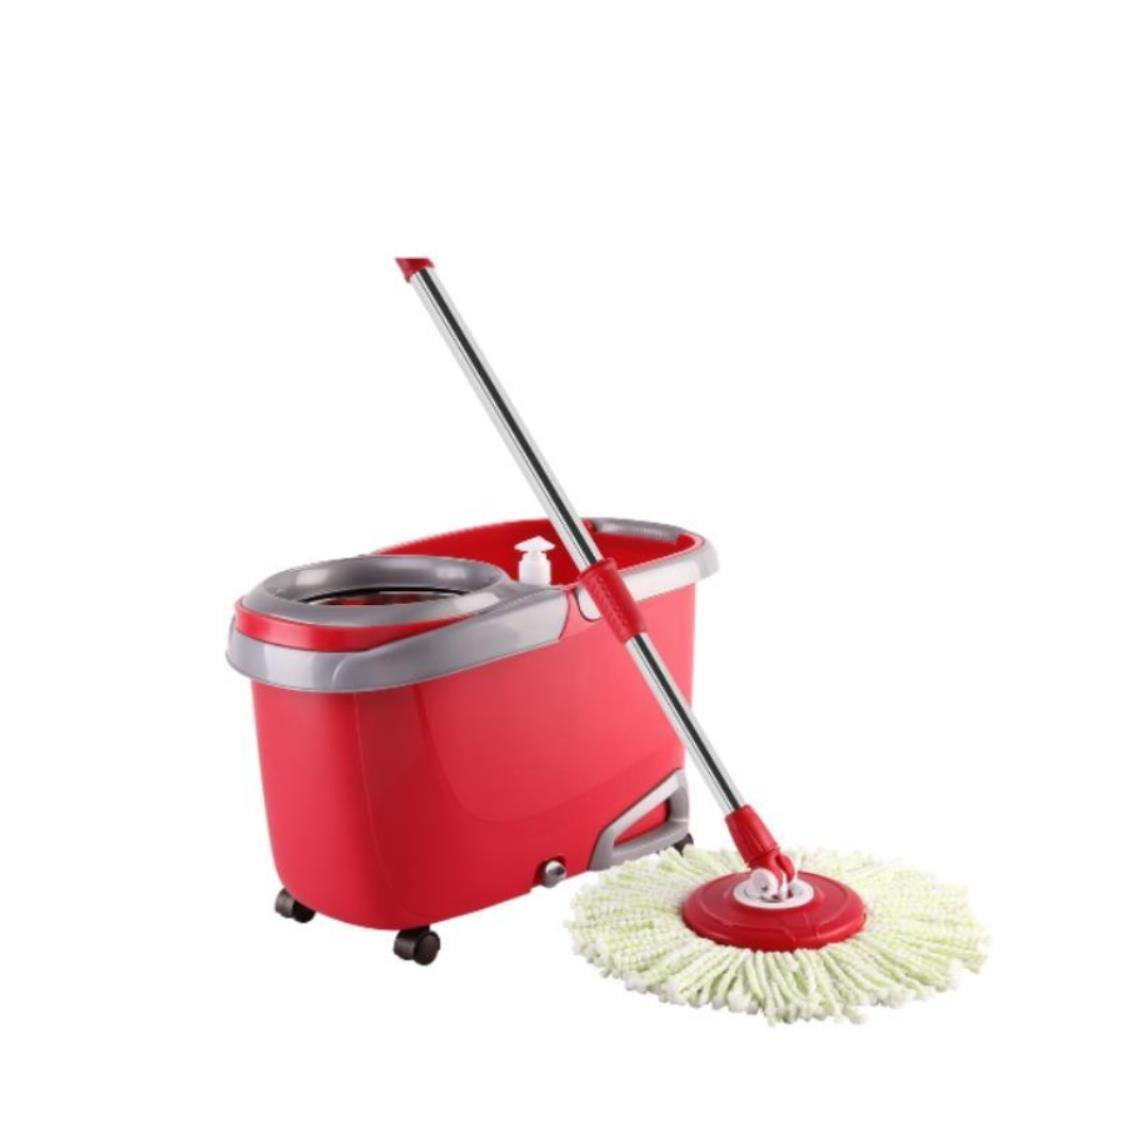 Spin Mop with round mop head